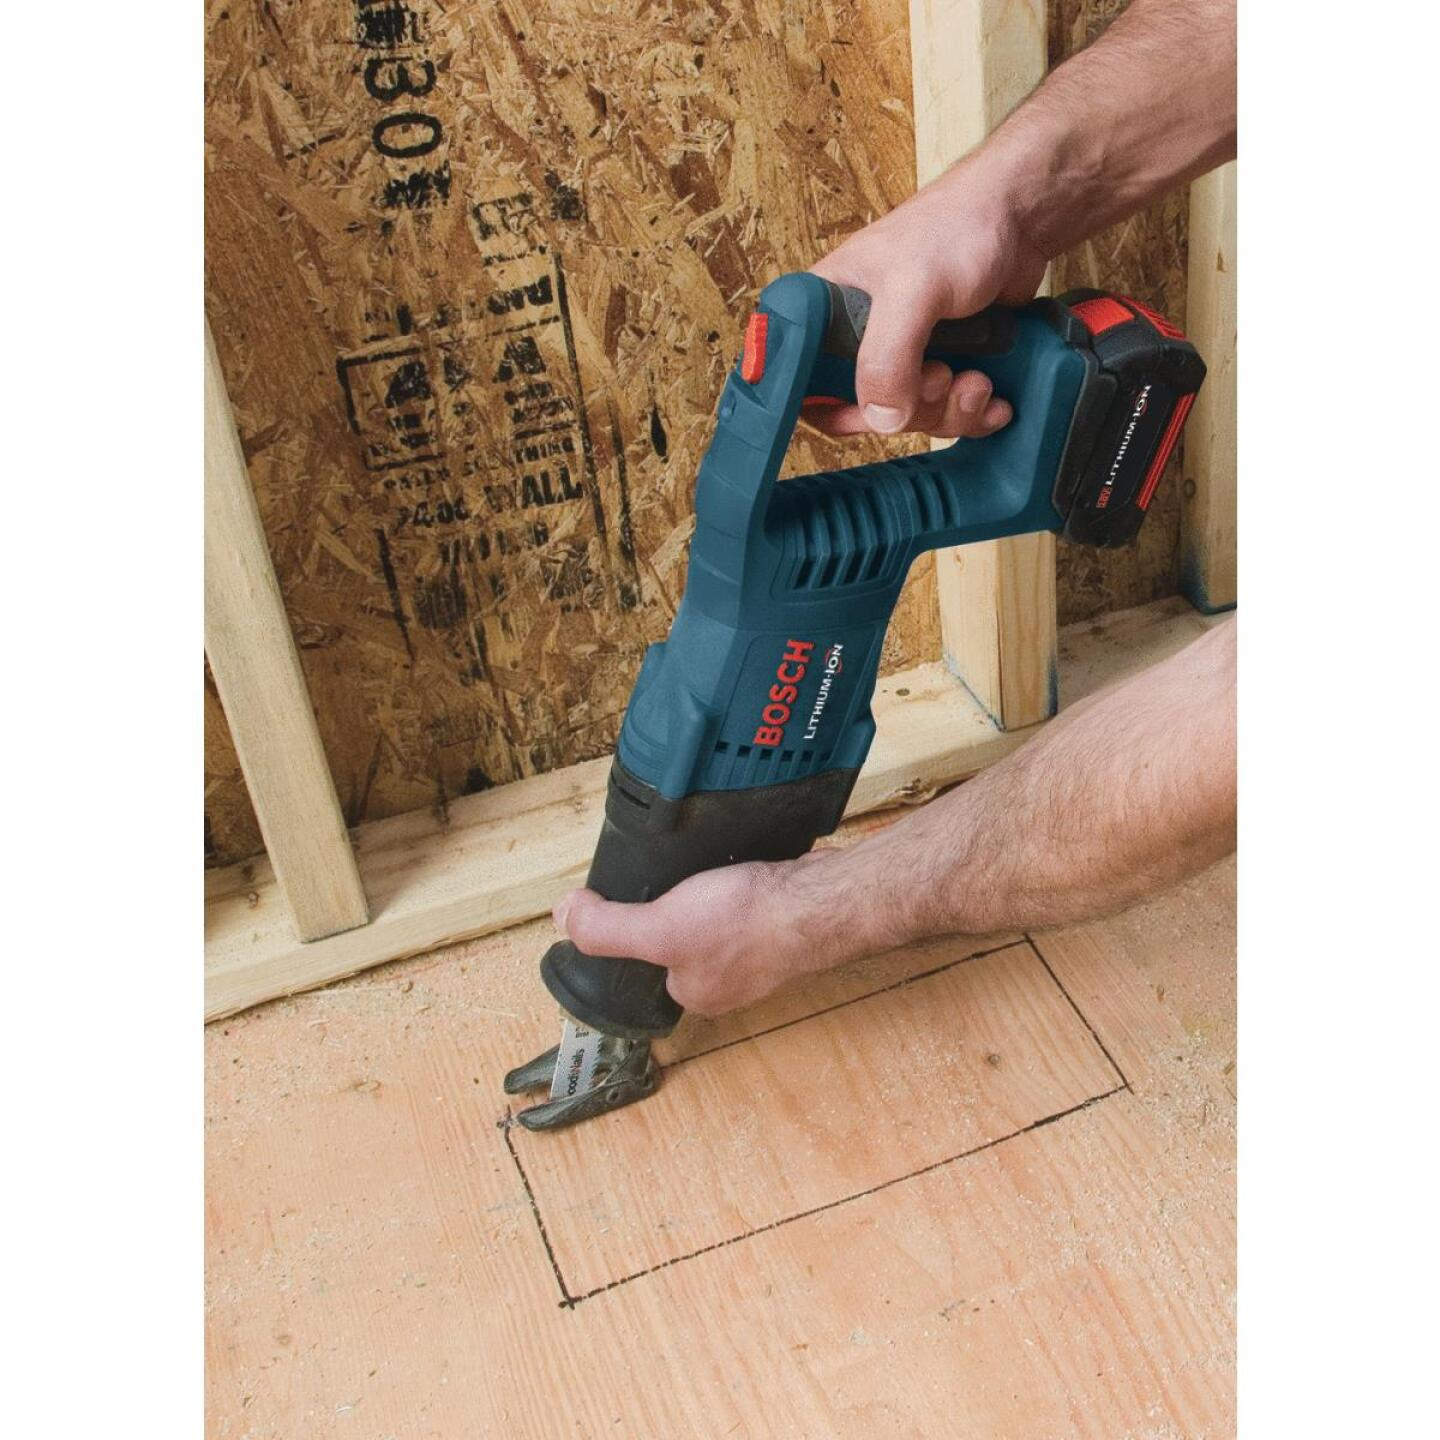 Bosch 18 Volt Lithium-Ion Cordless Reciprocating Saw (Bare Tool) Image 2